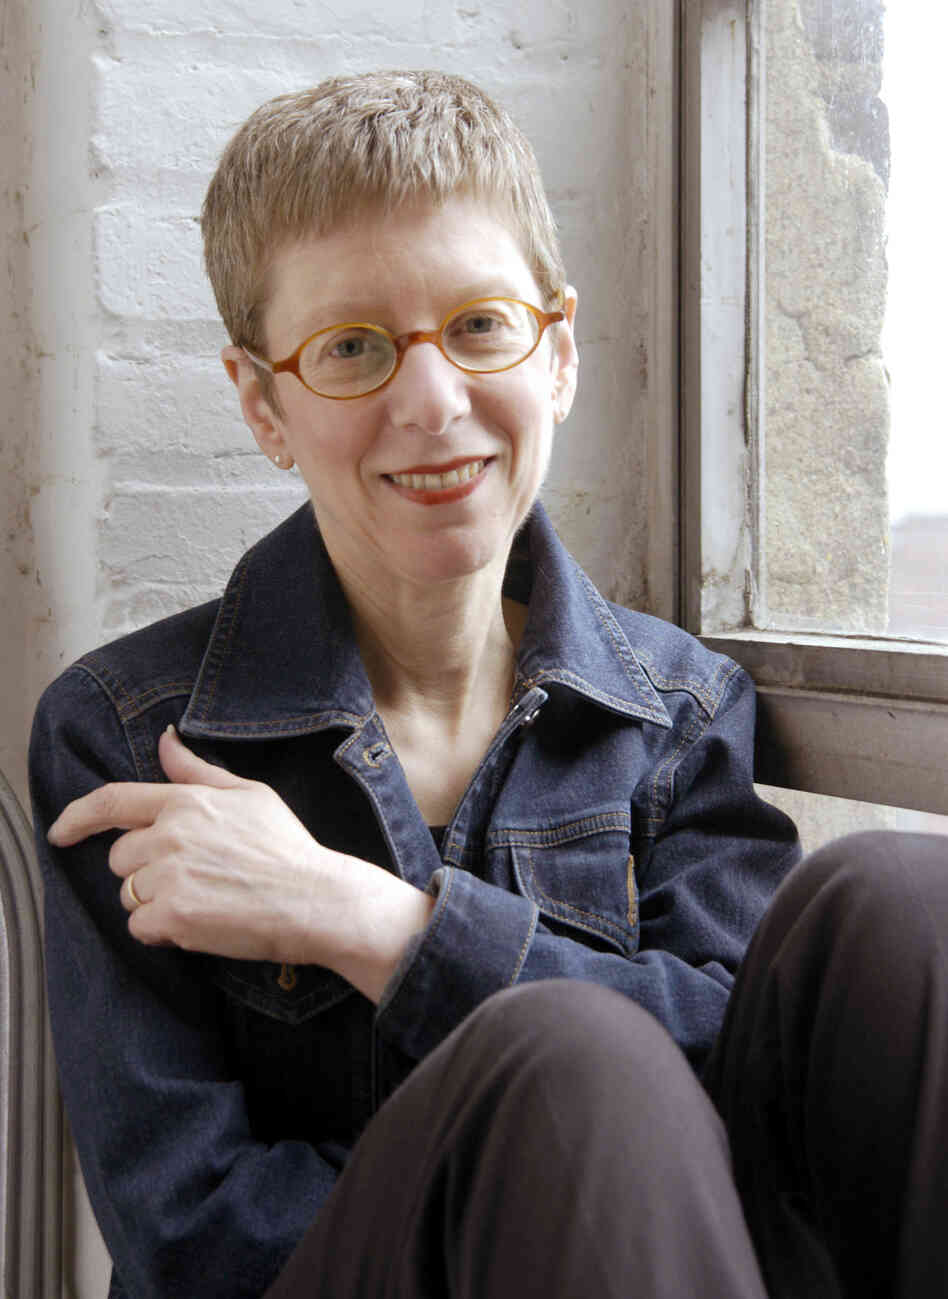 Terry Gross, host of Fresh Air from WHYY